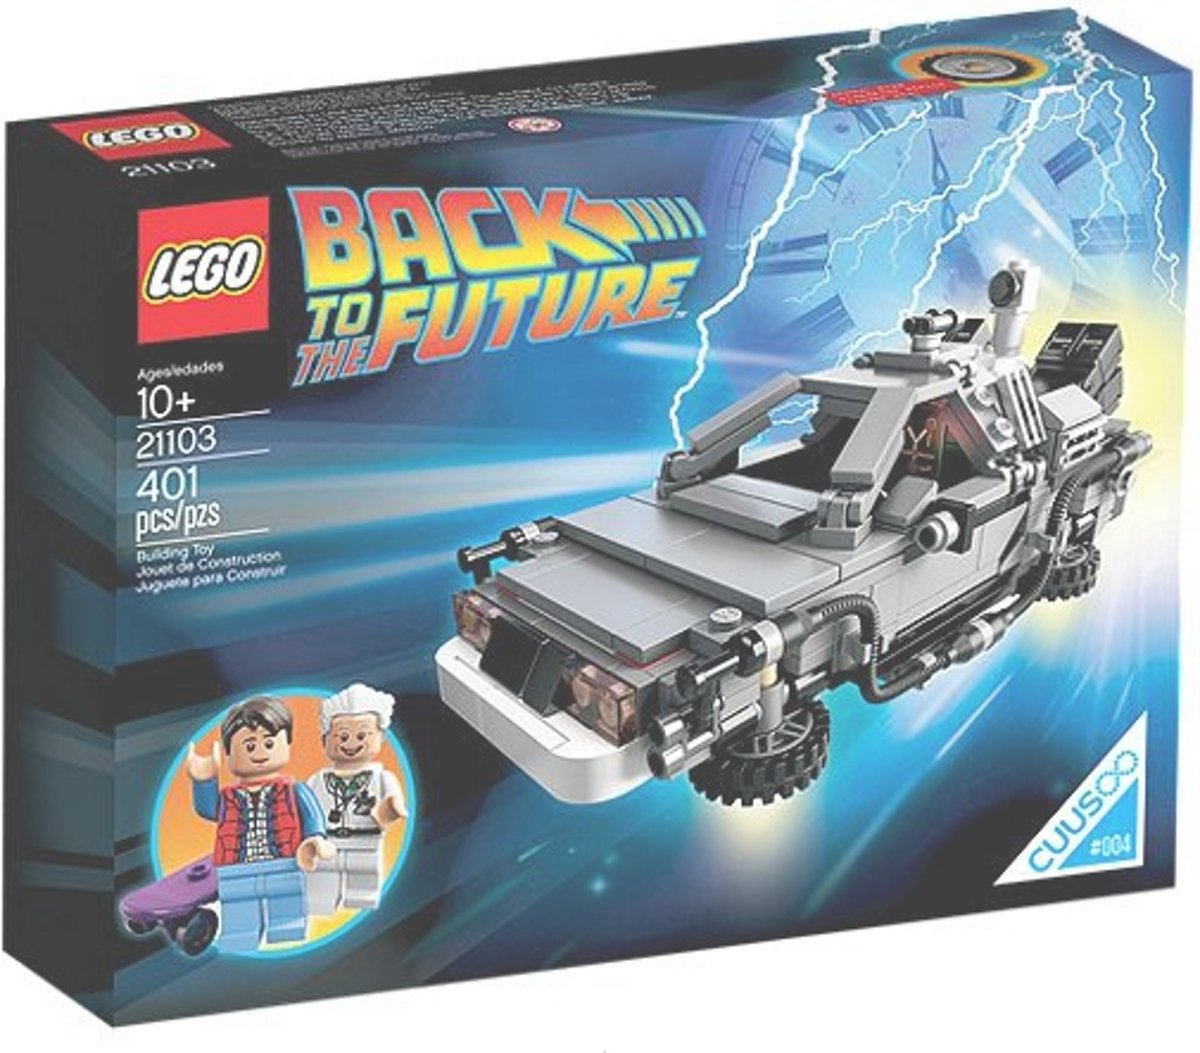 LEGO - Ideas/Cuusoo - The DeLorean Time Machine - 21103